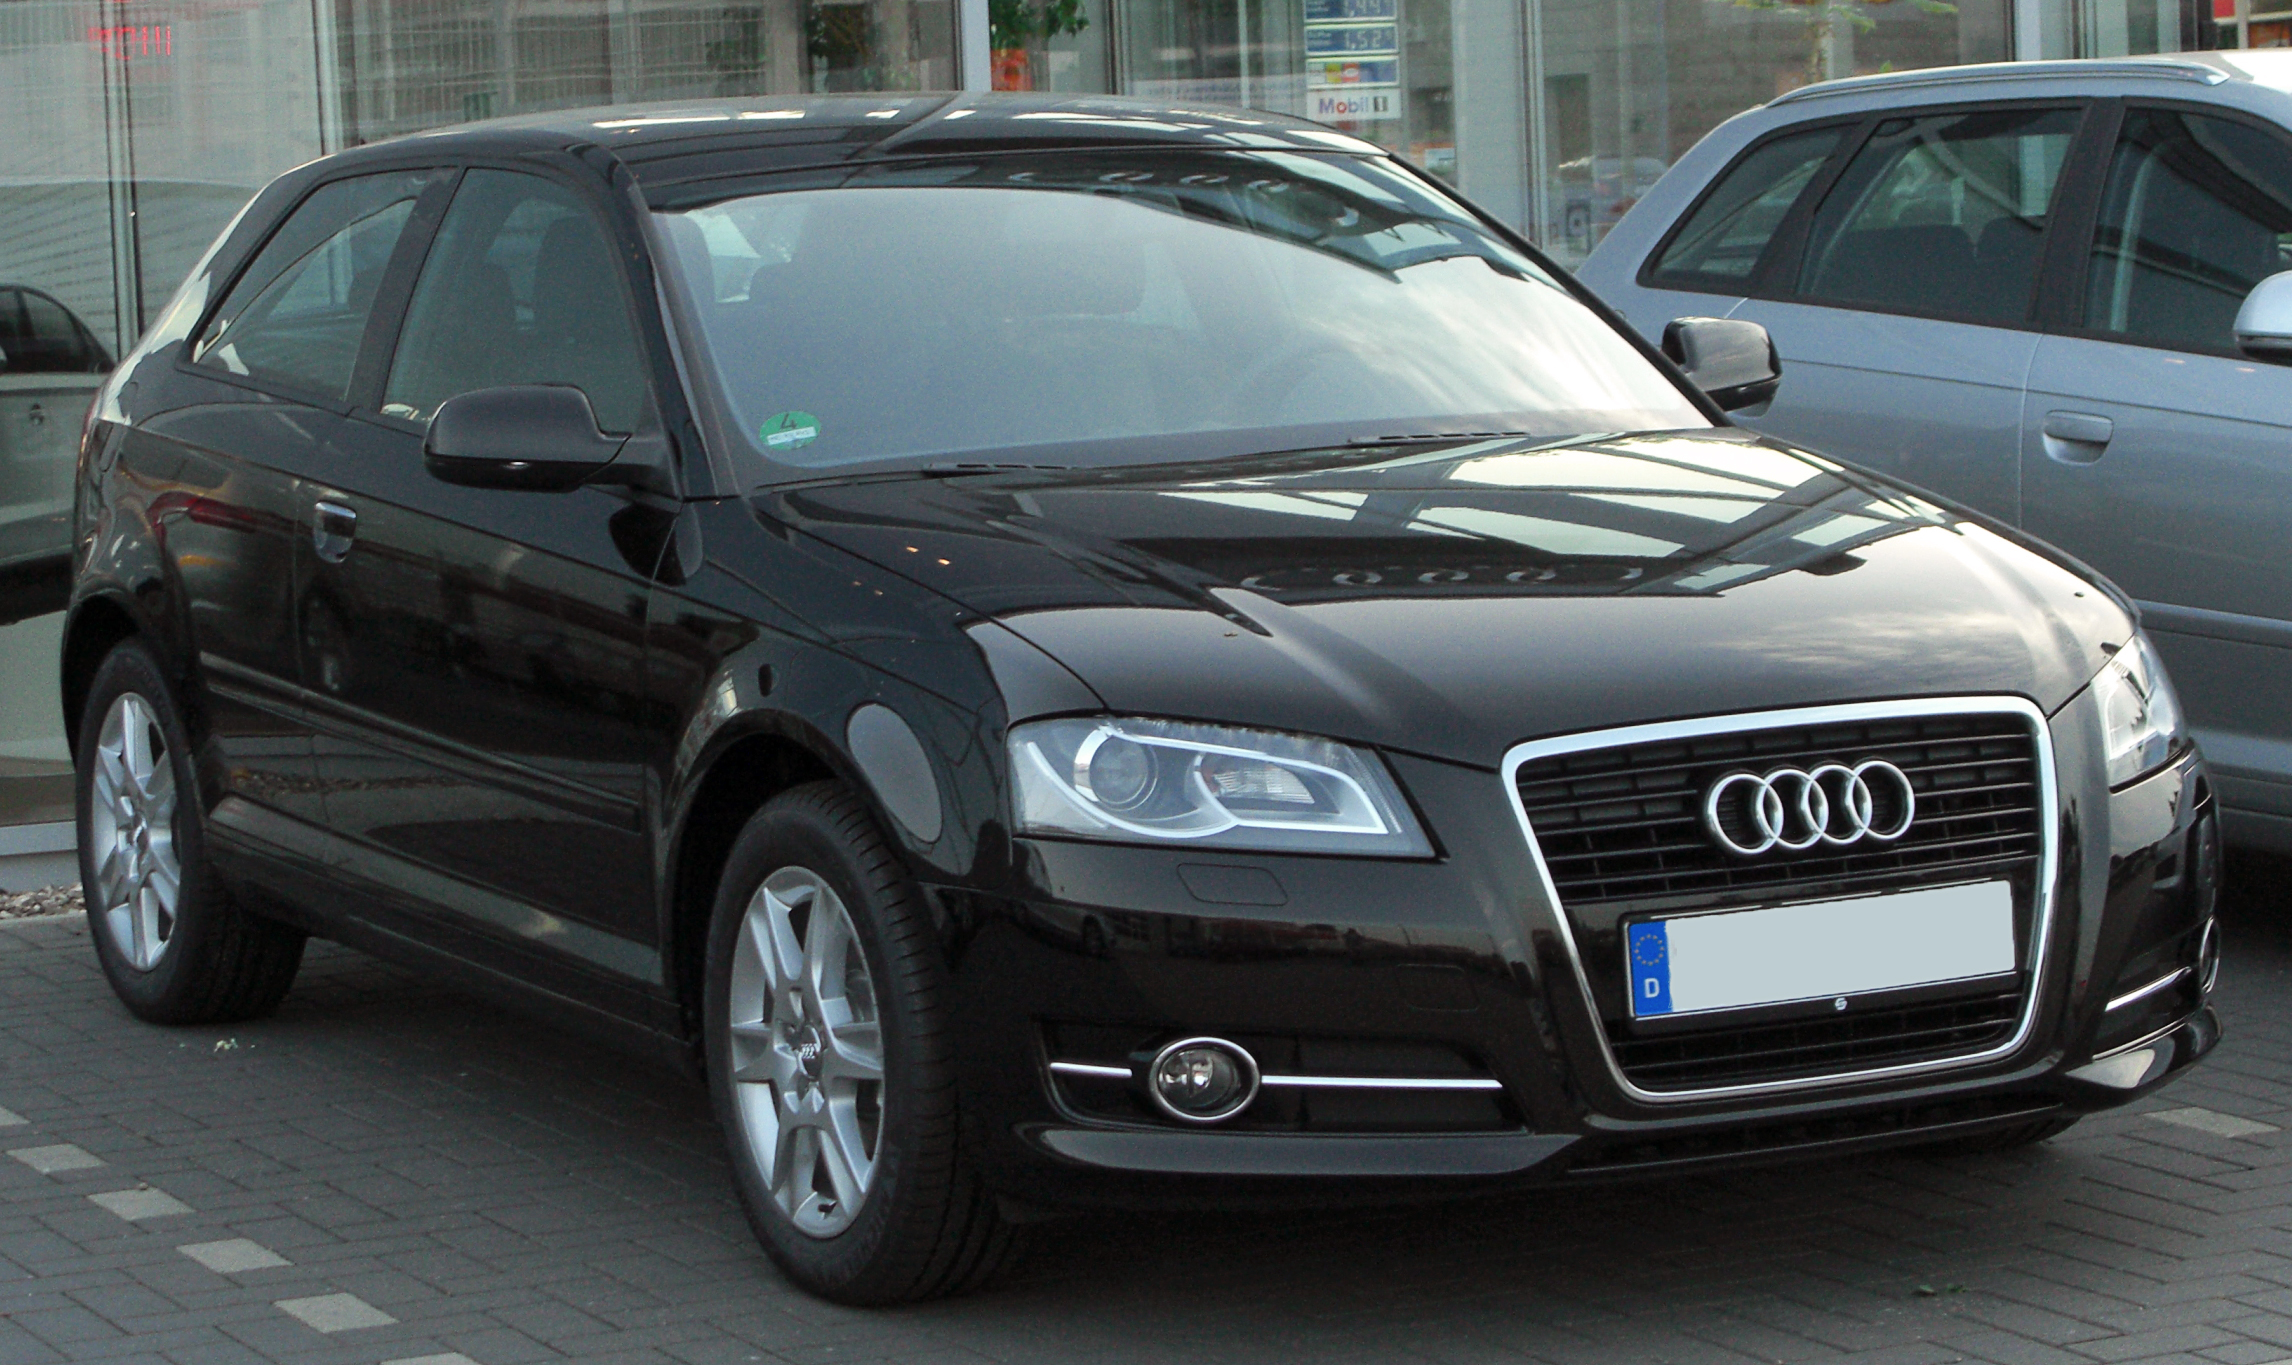 2010 audi a3 sportback 8p pictures information and specs auto. Black Bedroom Furniture Sets. Home Design Ideas